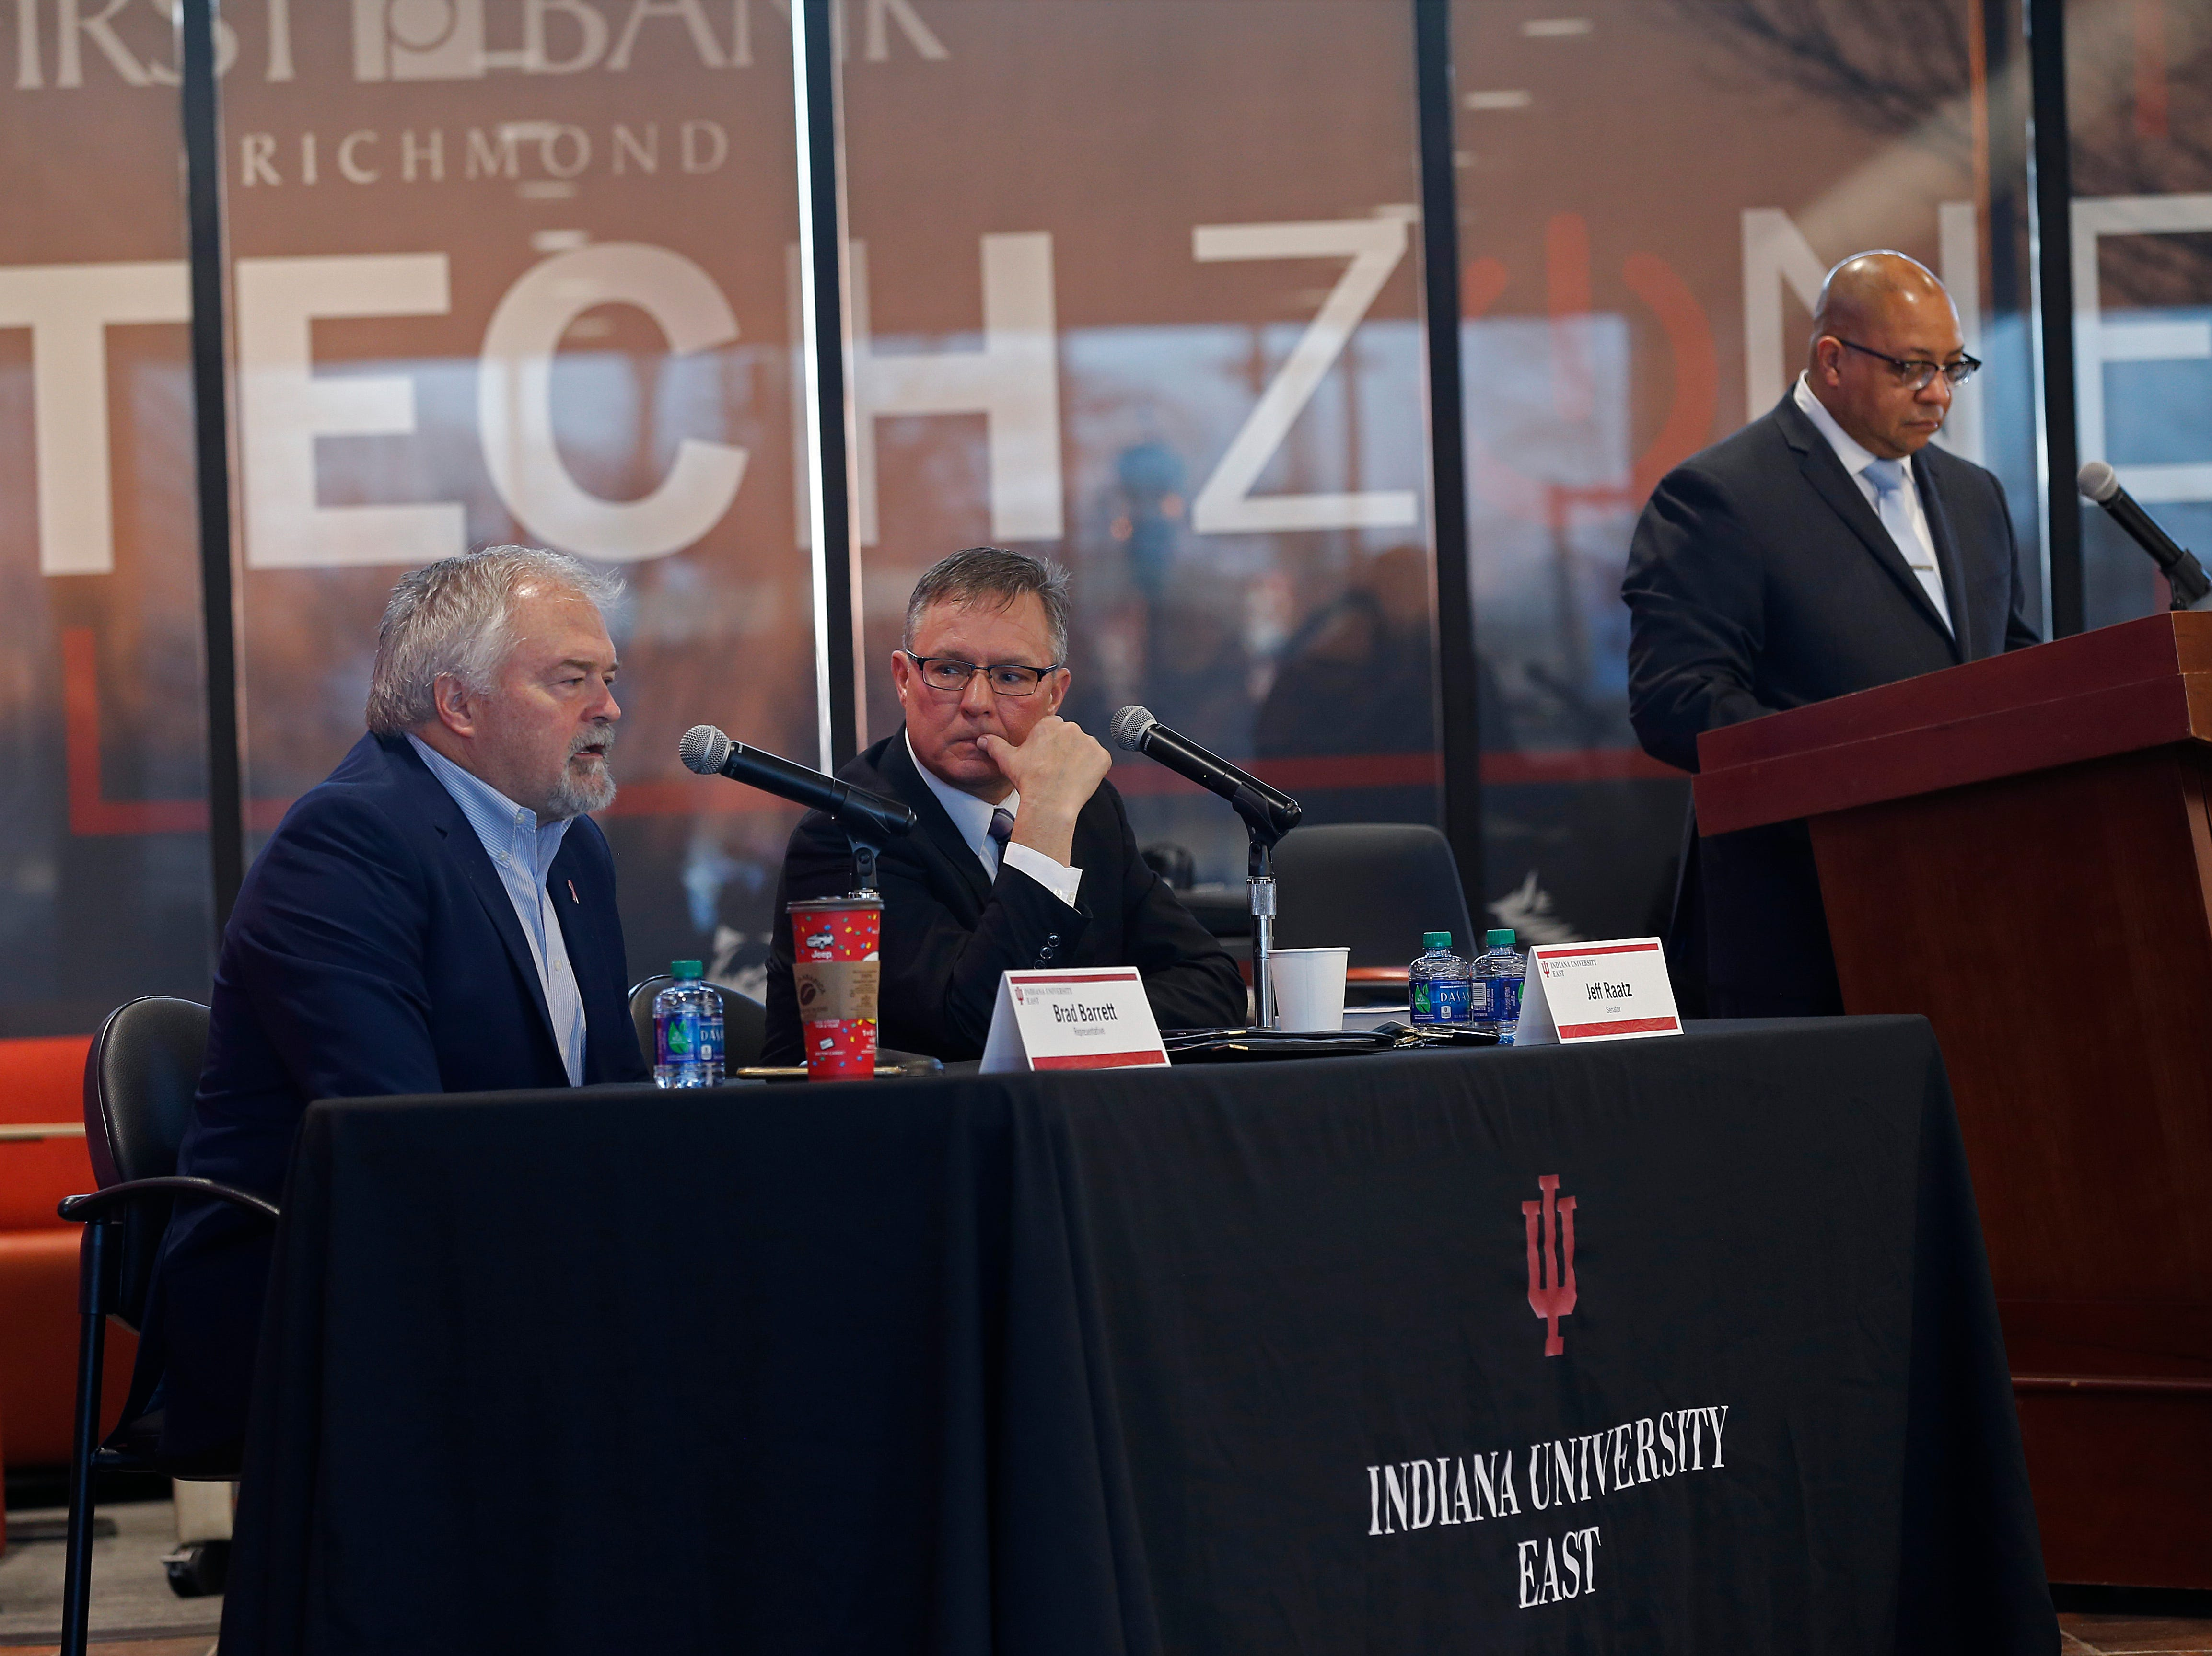 State Rep. Brad Barrett (left) and State Sen. Jeff Raatz (center) answer questions from the audience during the Legislative Forum event on Friday, March 22, 2019, at IU East in Richmond.